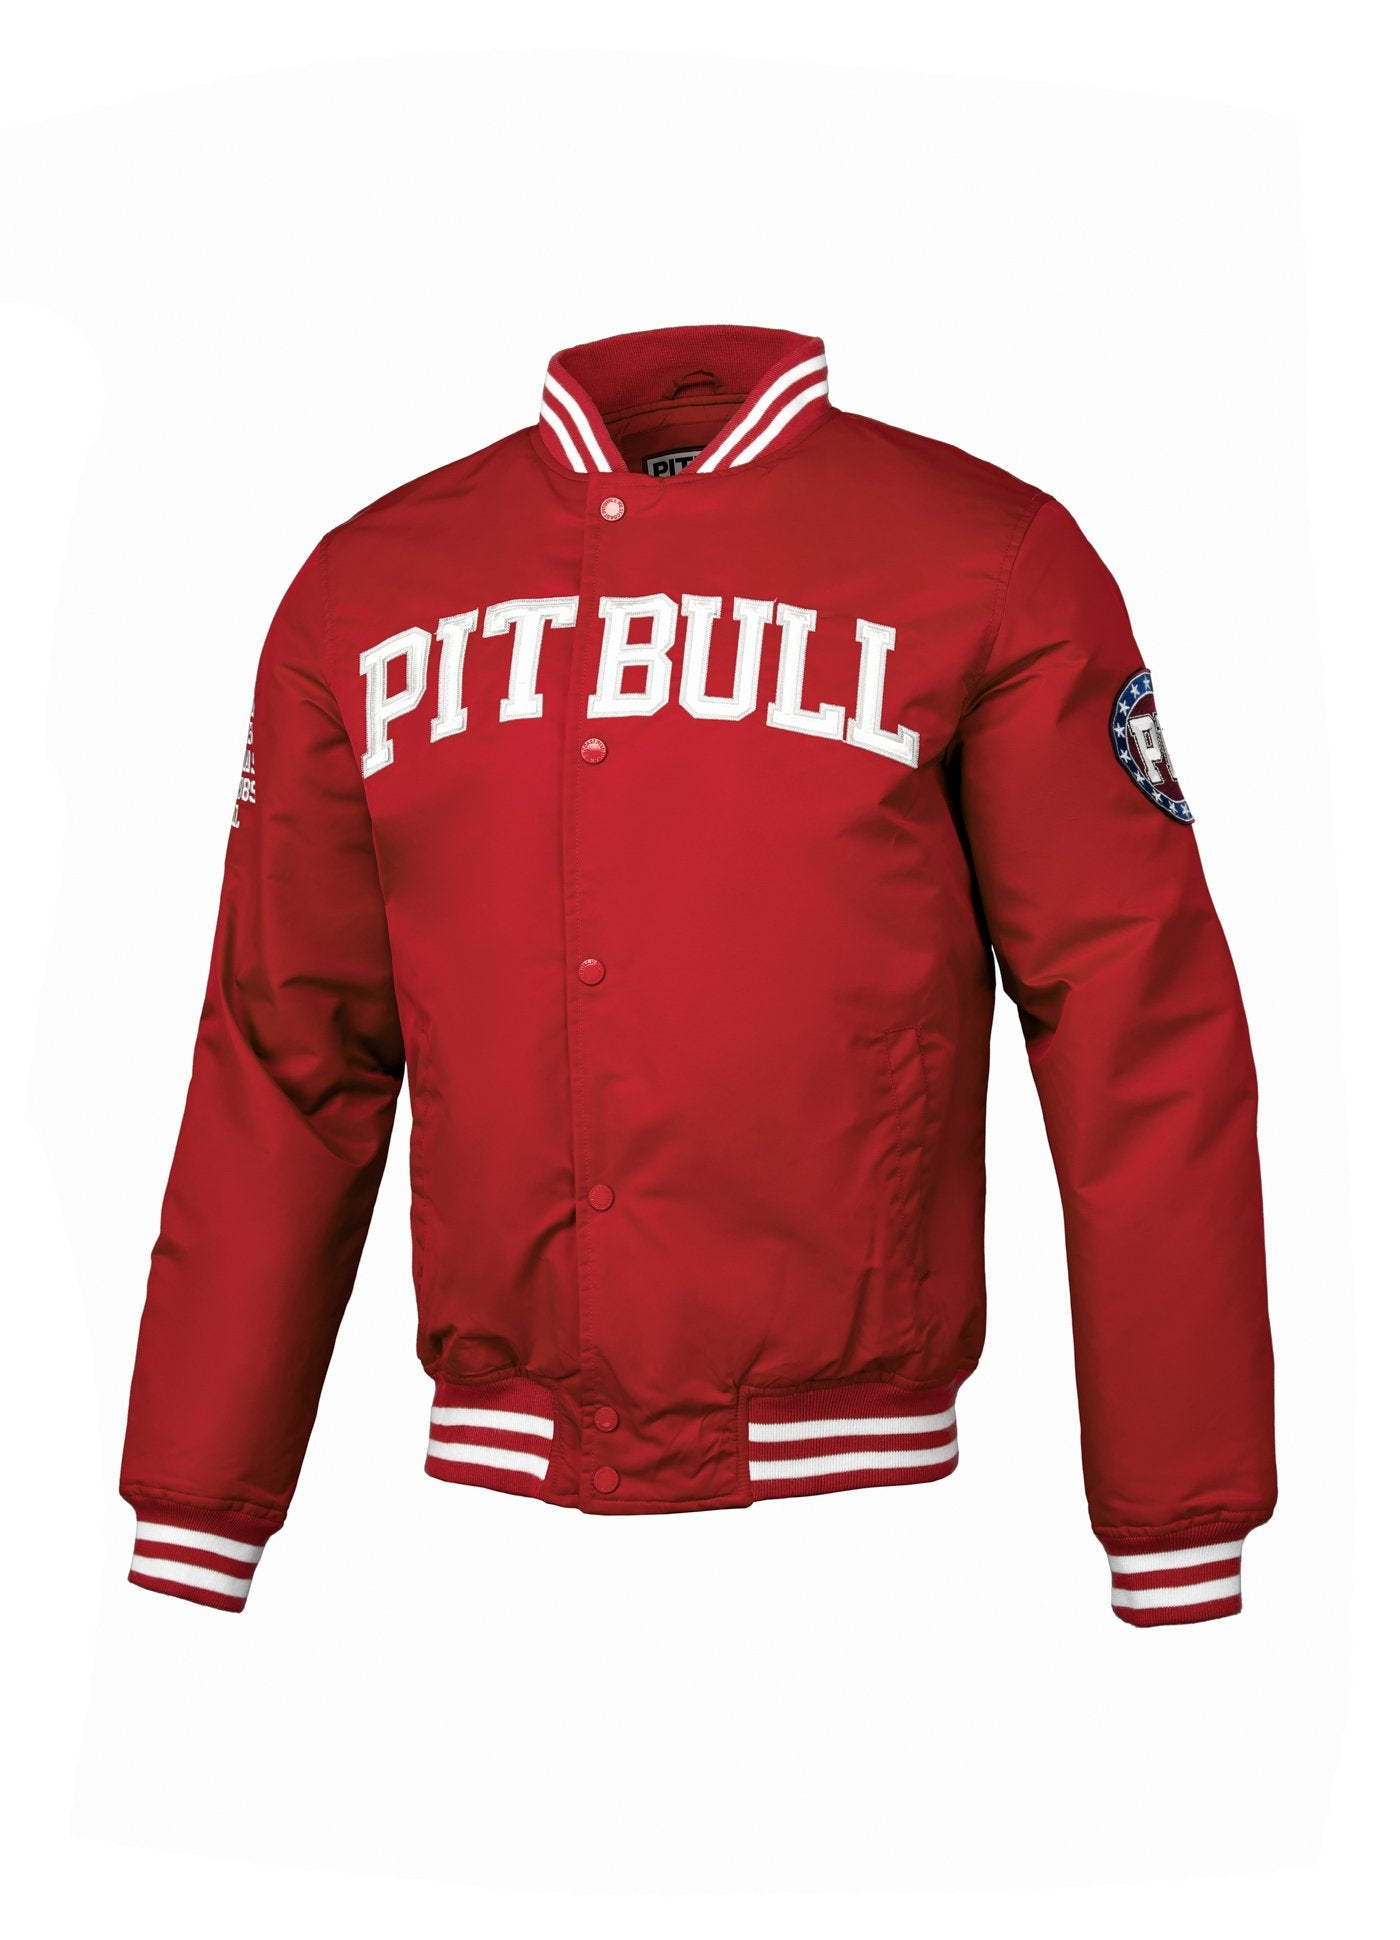 JACKET HERSON RED - Pitbull West Coast U.S.A.